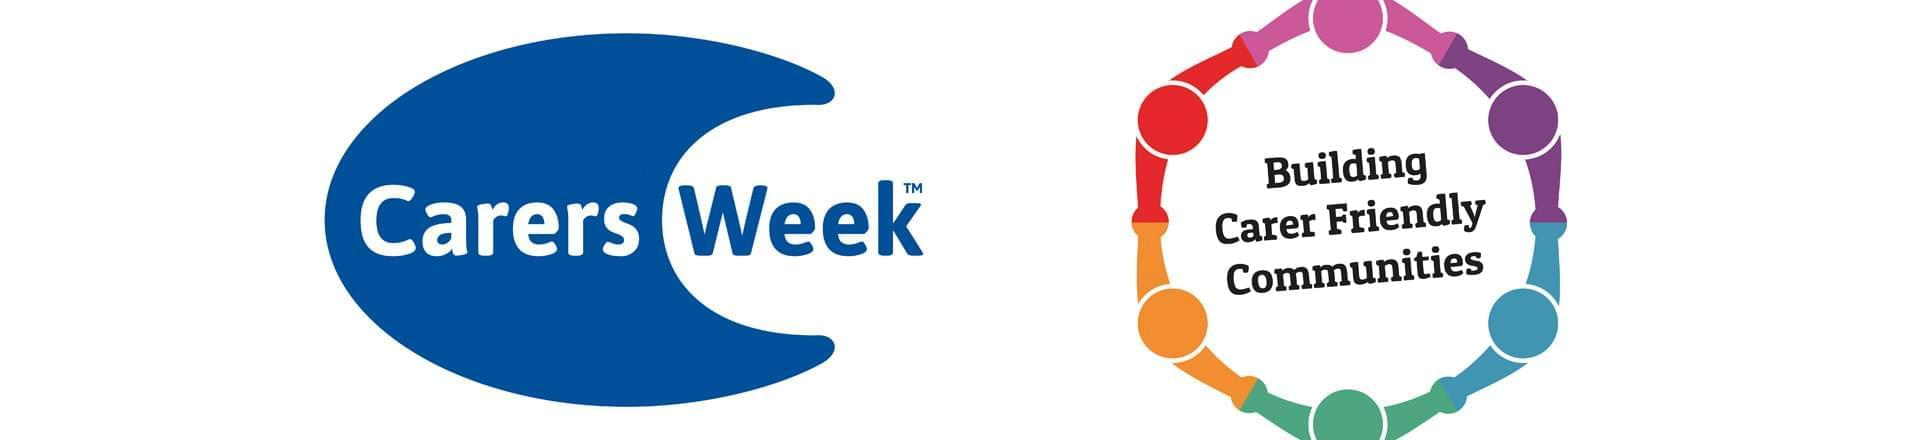 Carers Week logo with Building Carer Friendly Communities  logo